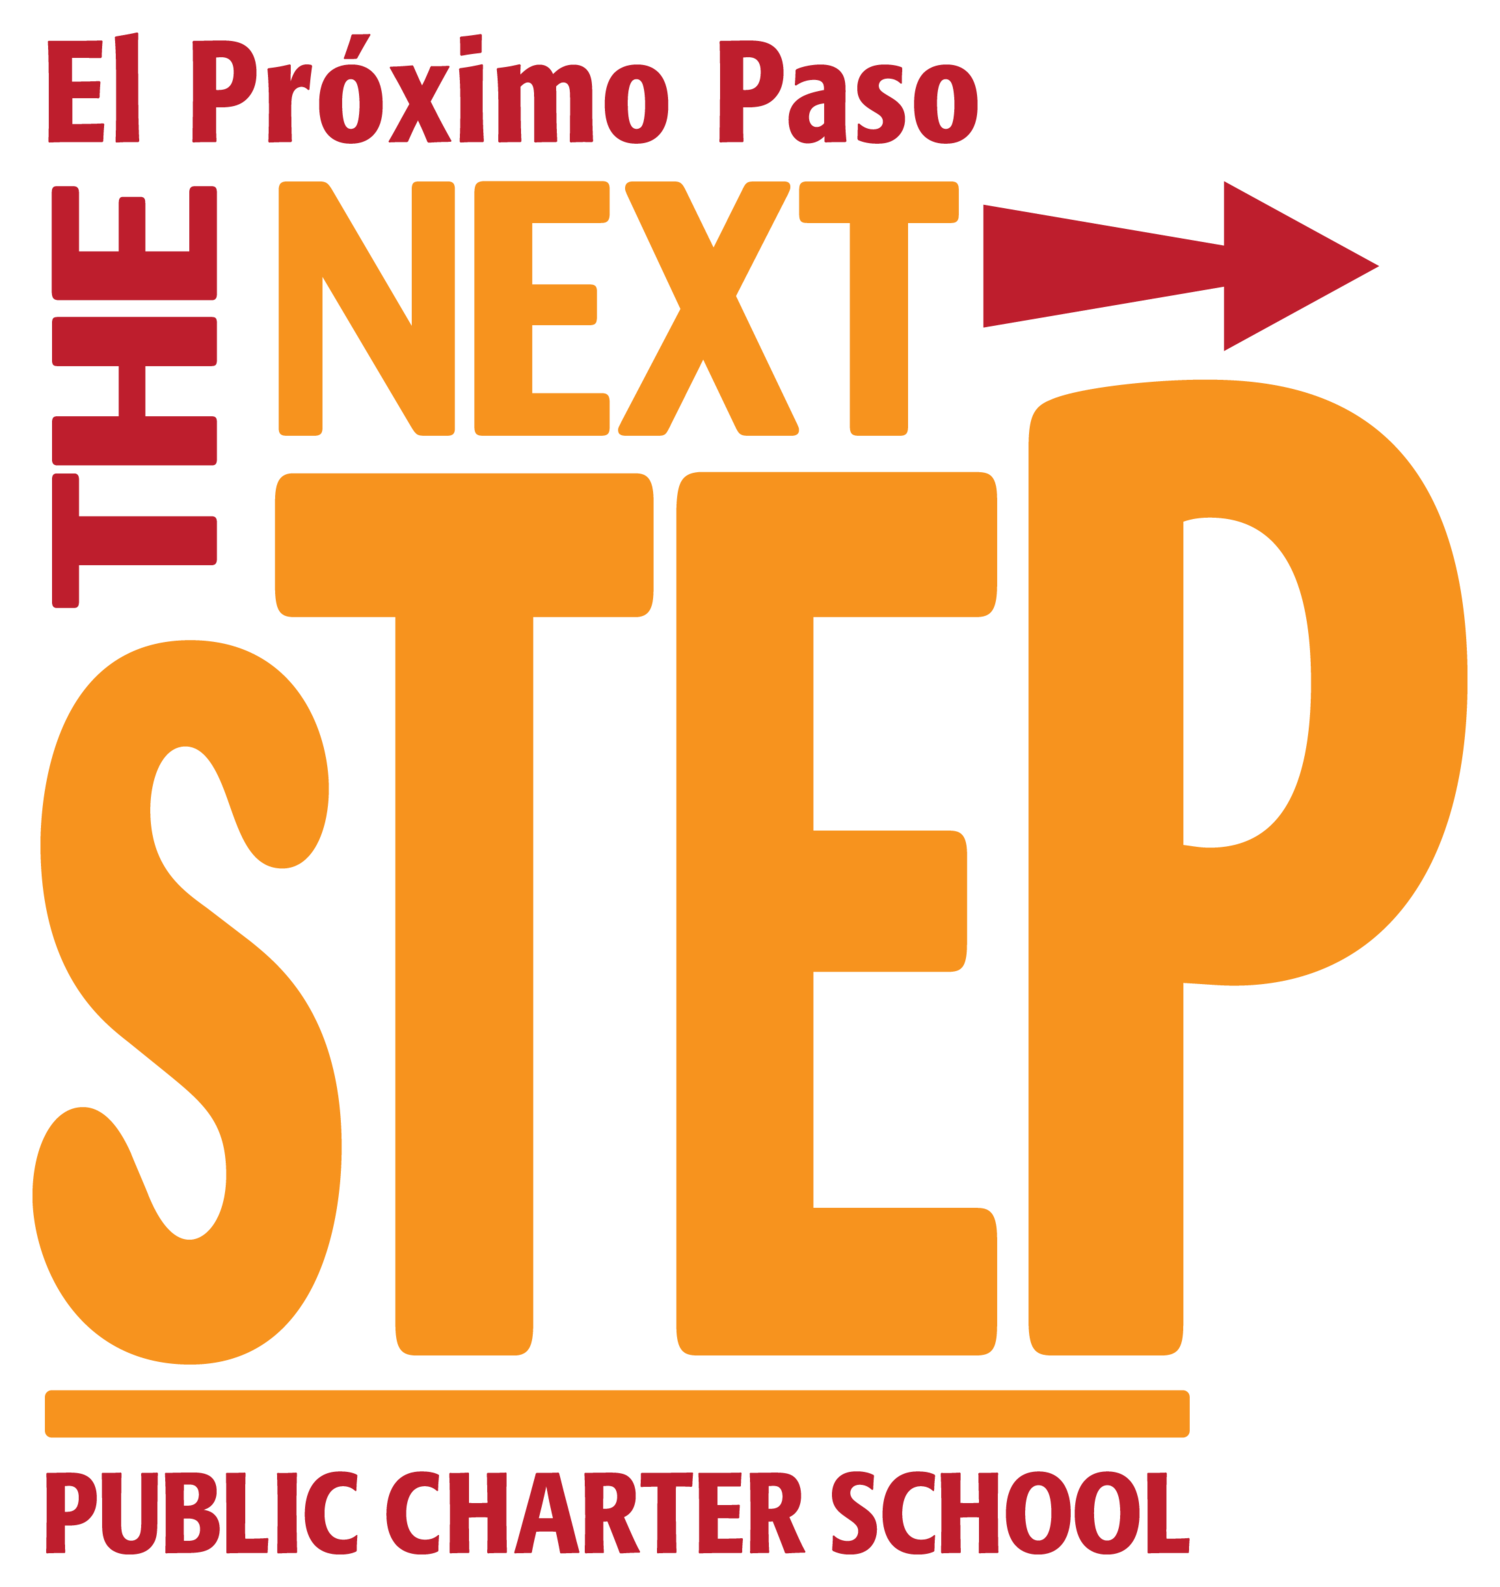 The Next Step Public Charter School